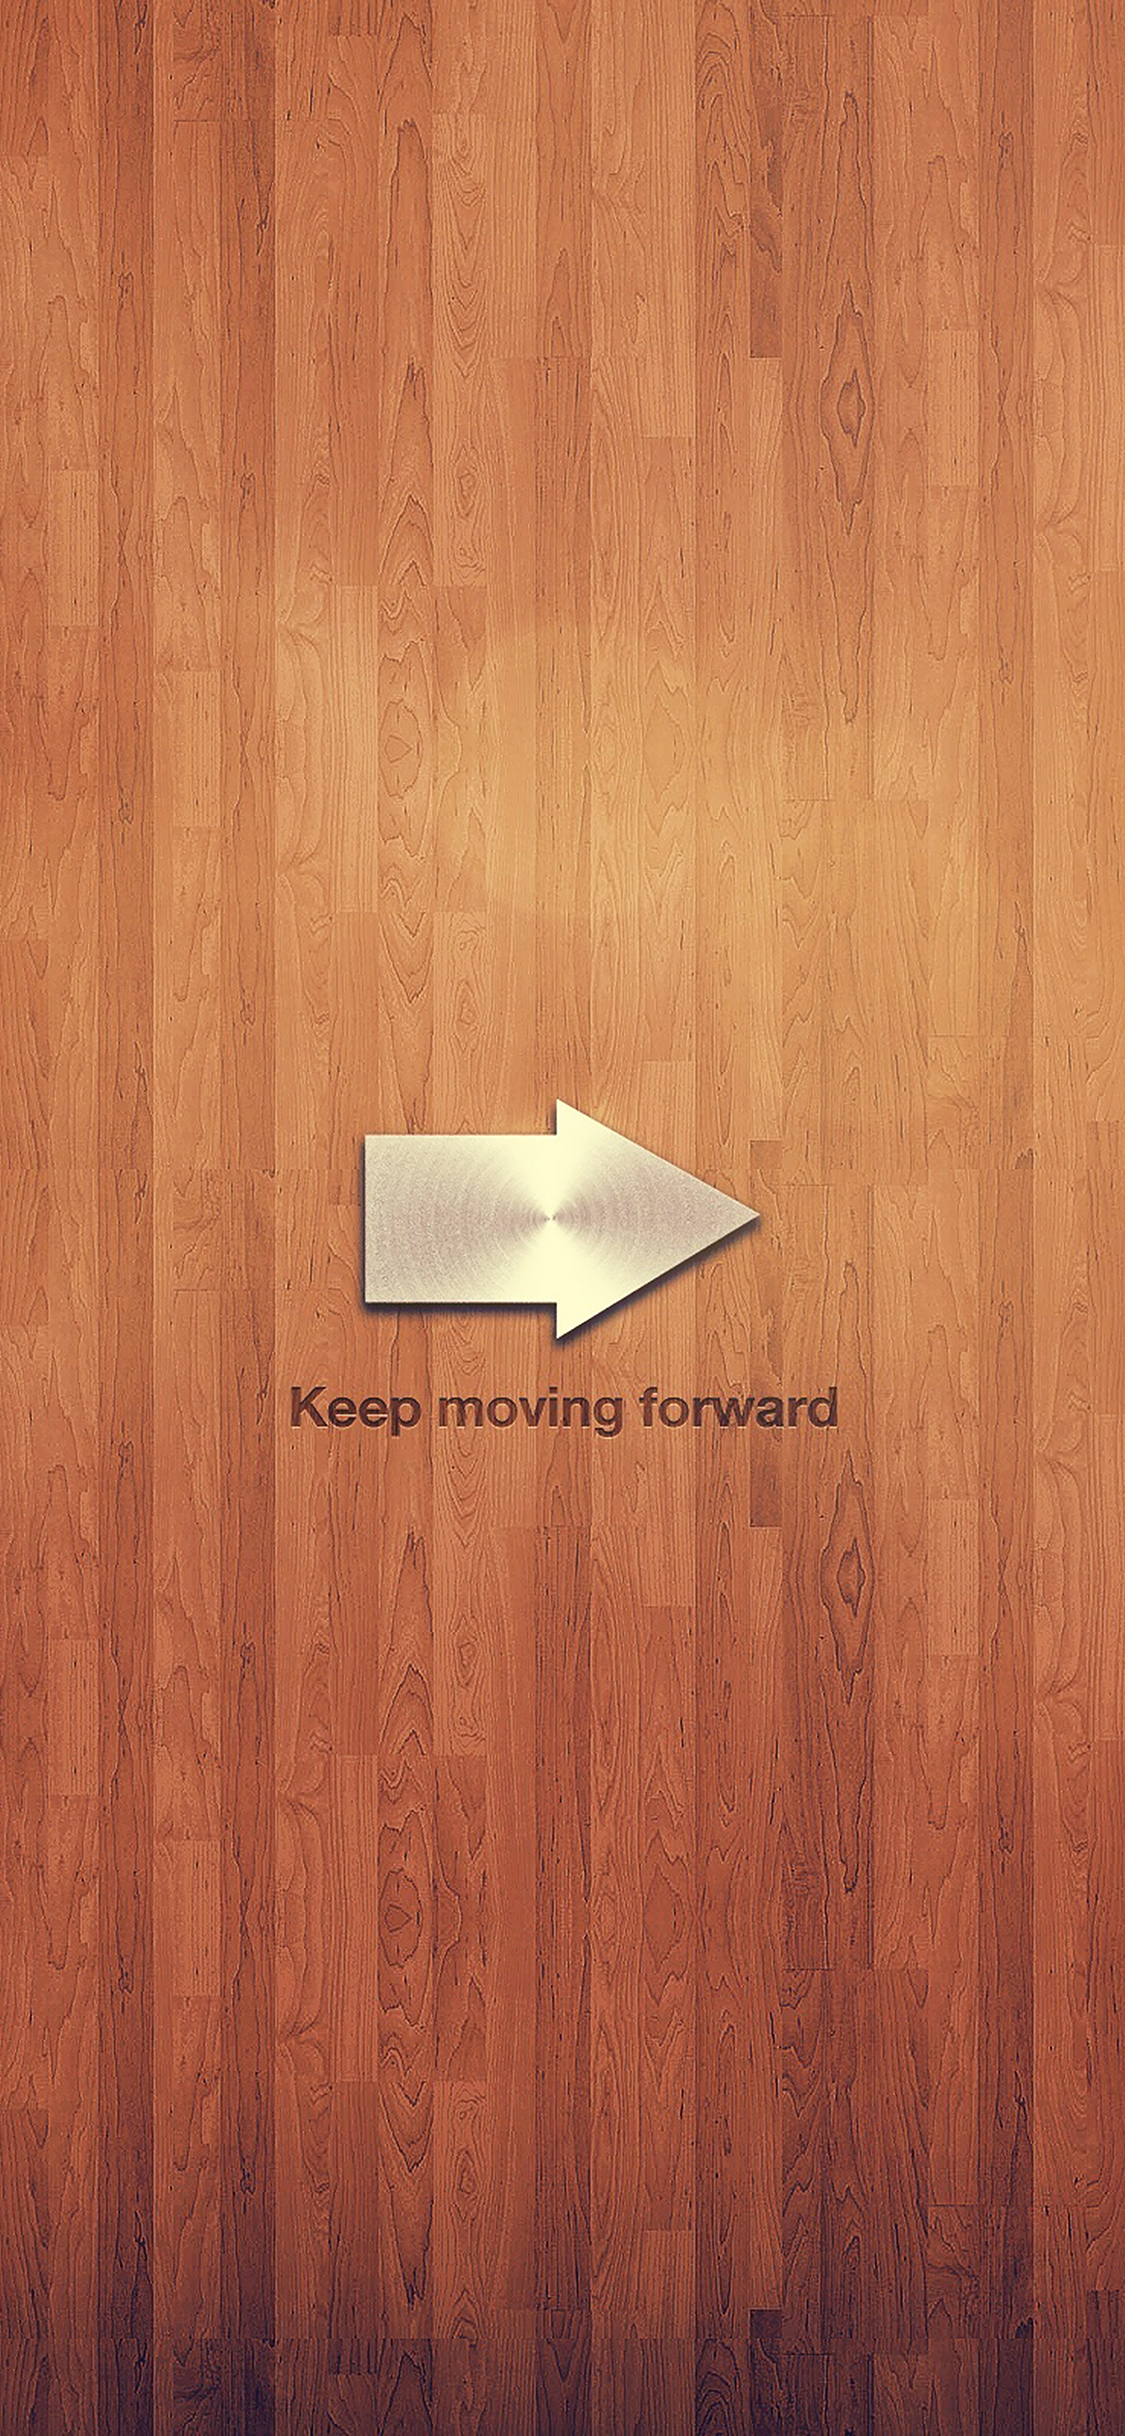 iPhoneXpapers.com-Apple-iPhone-wallpaper-ah74-keep-moving-forward-quote-tree-texture-art